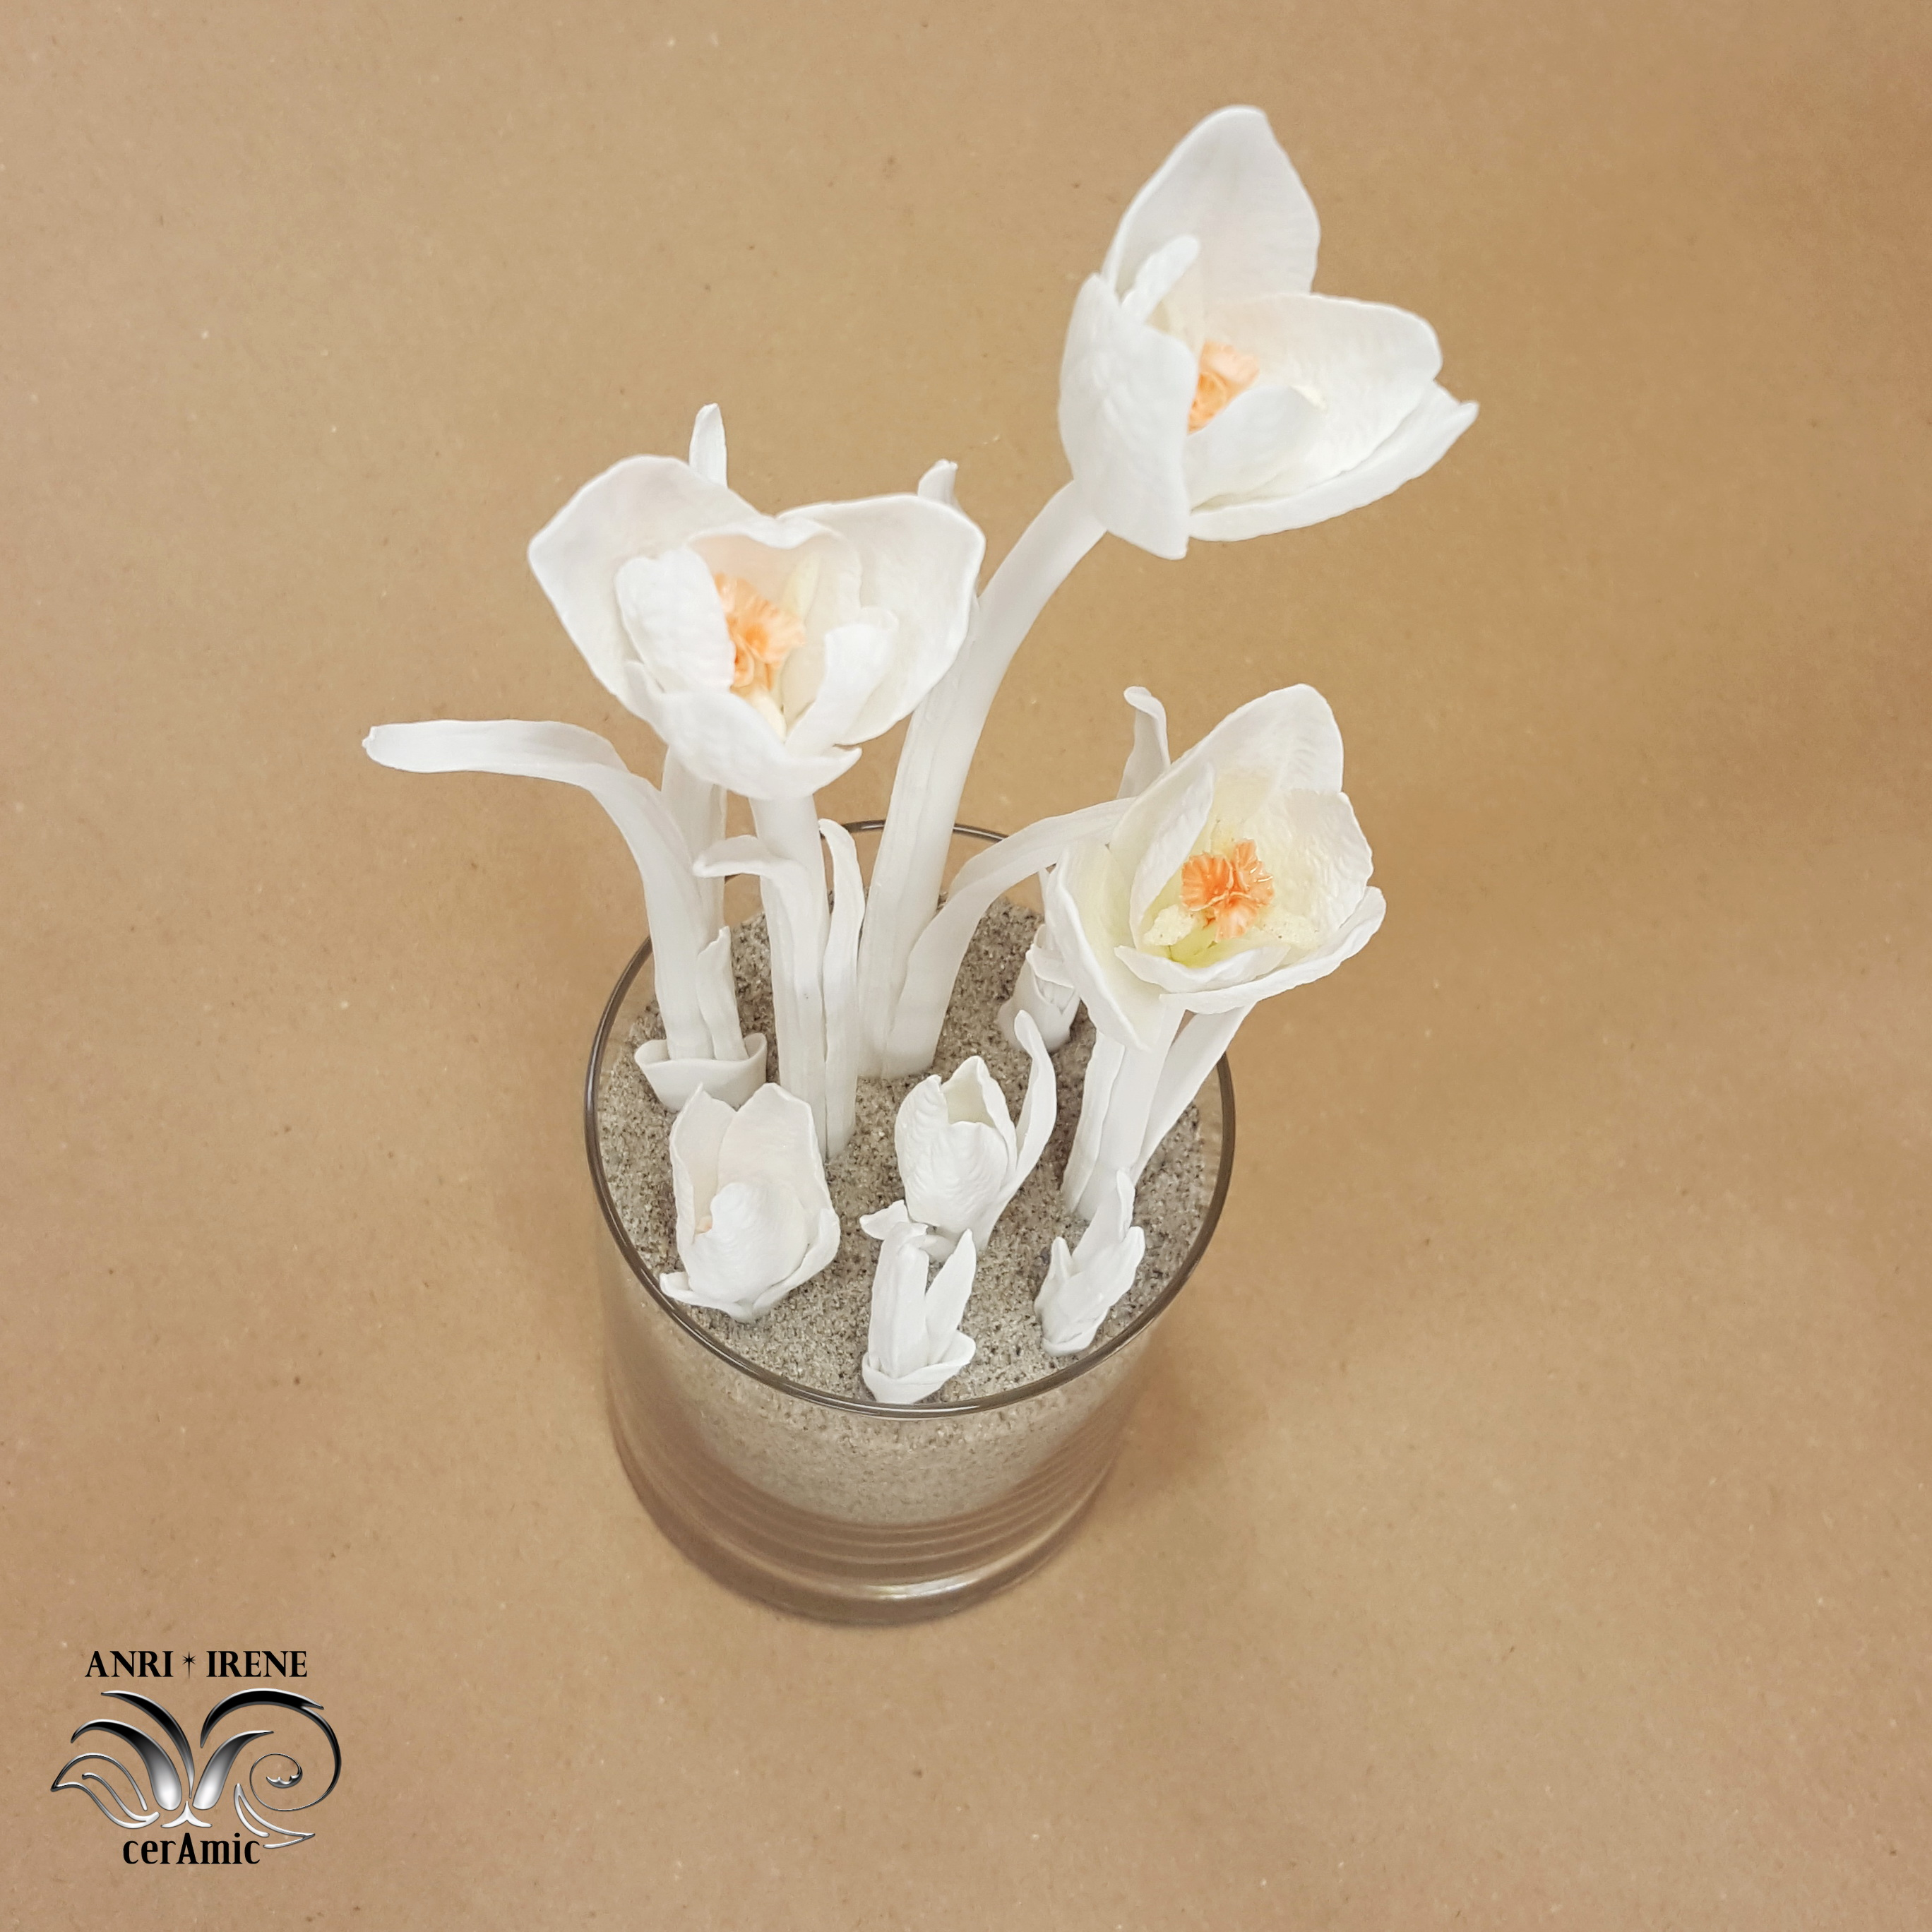 Porcelain crocus